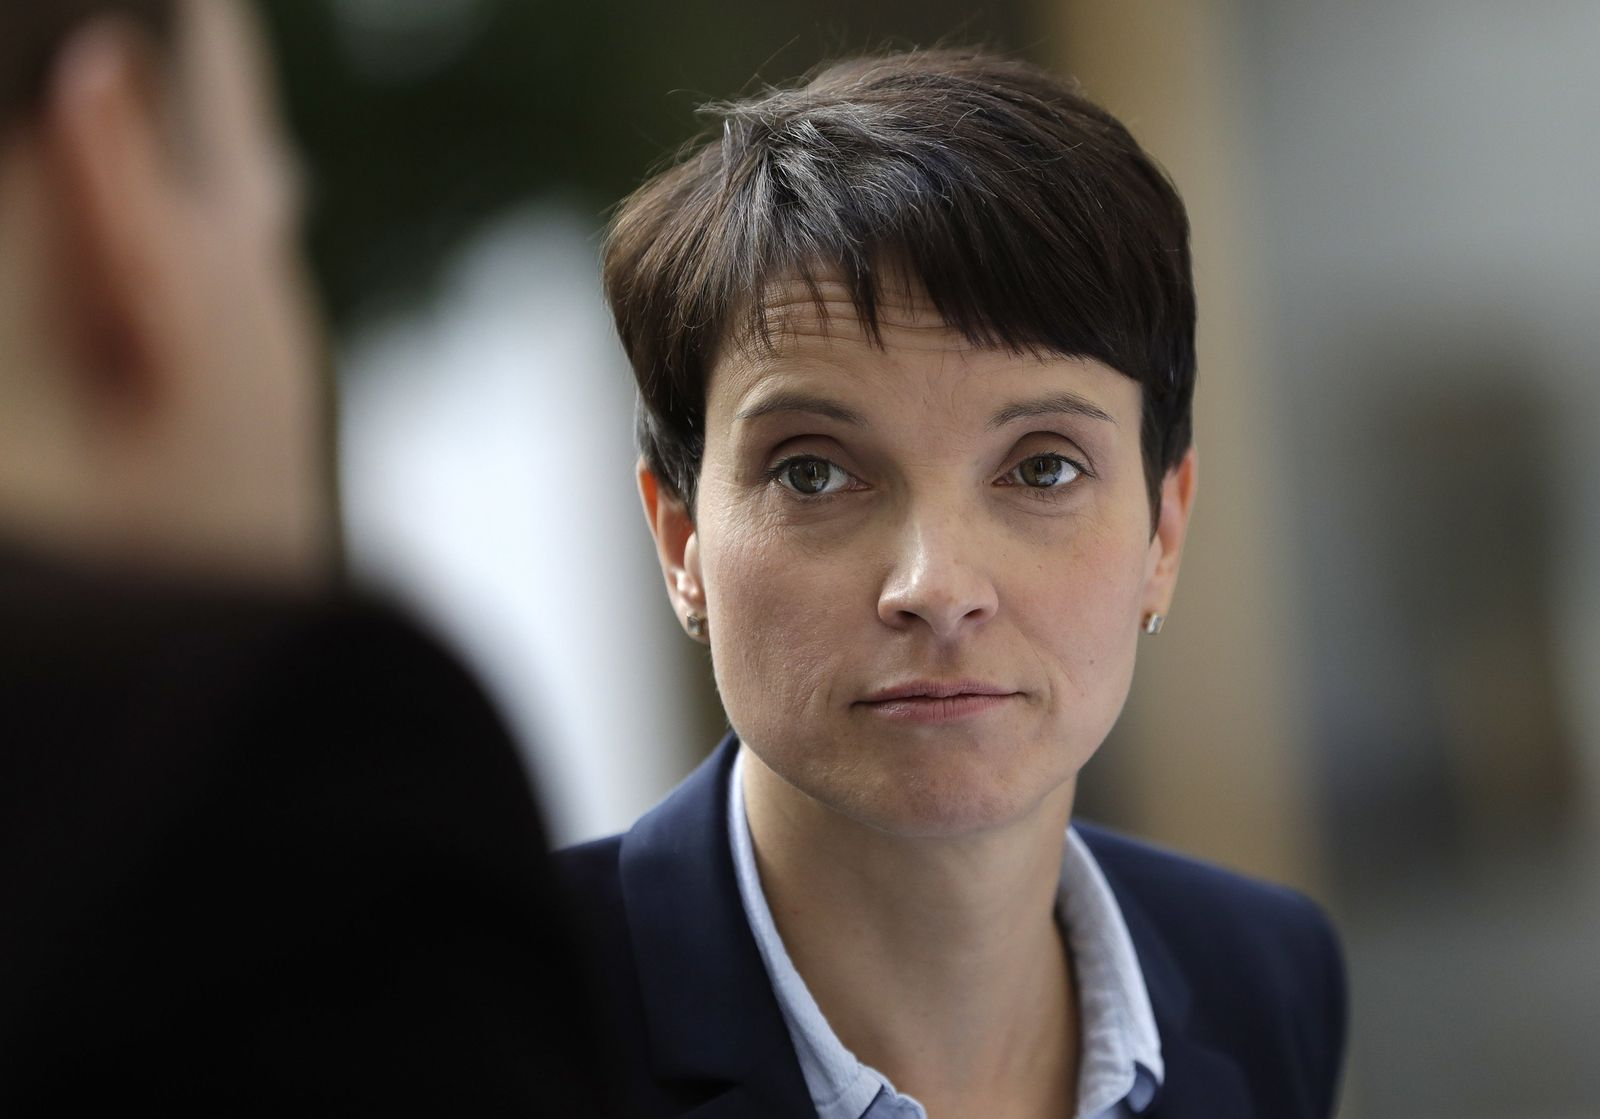 Germany Election Frauke Petry